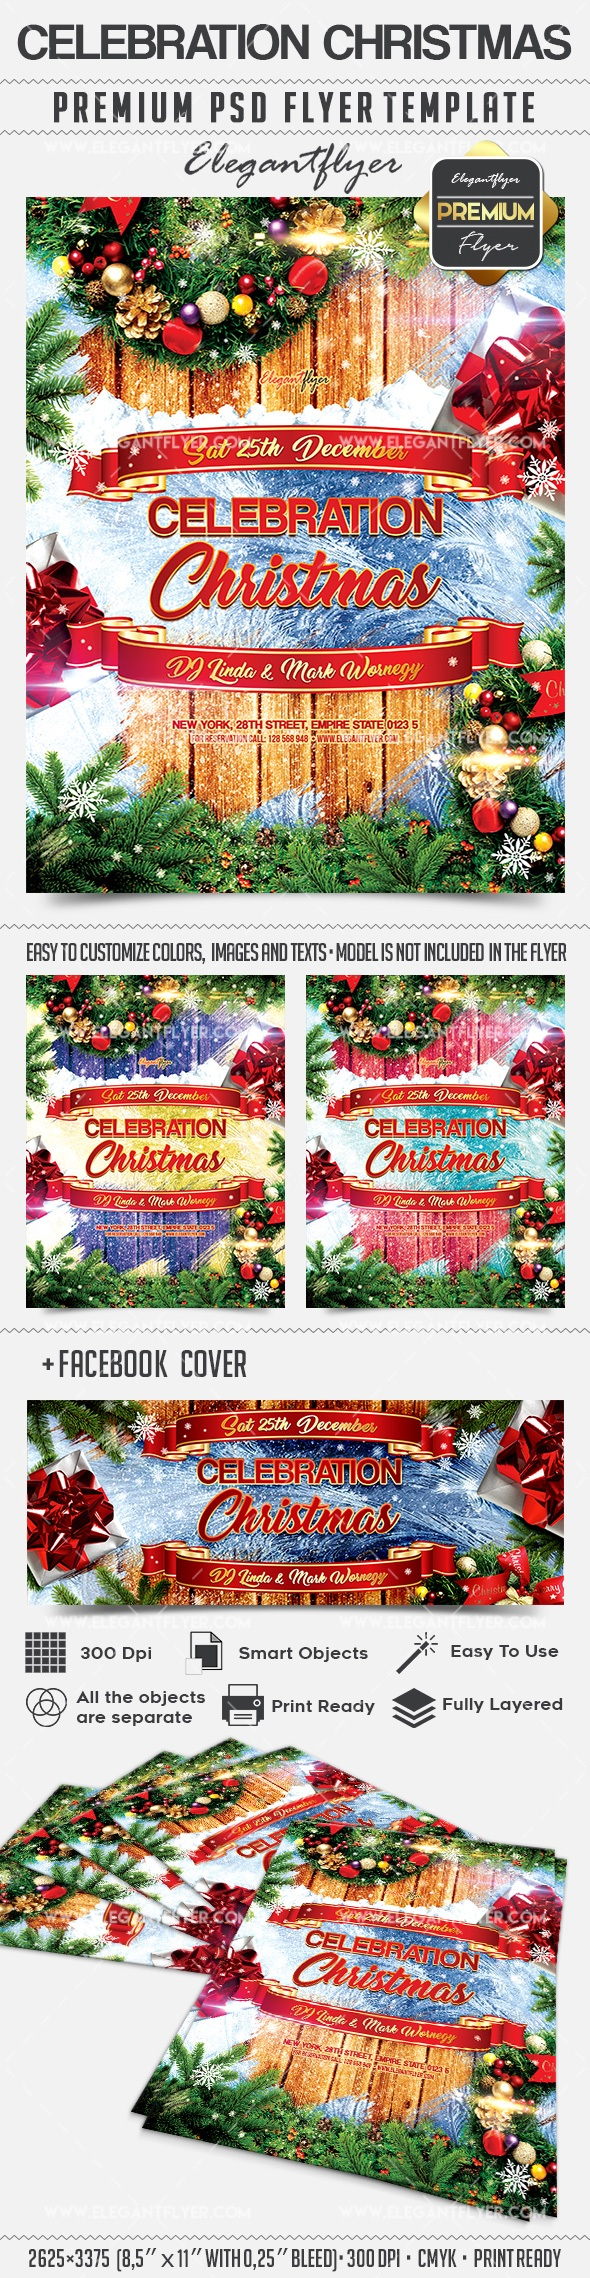 Celebration Christmas – Flyer PSD Template + Facebook Cover